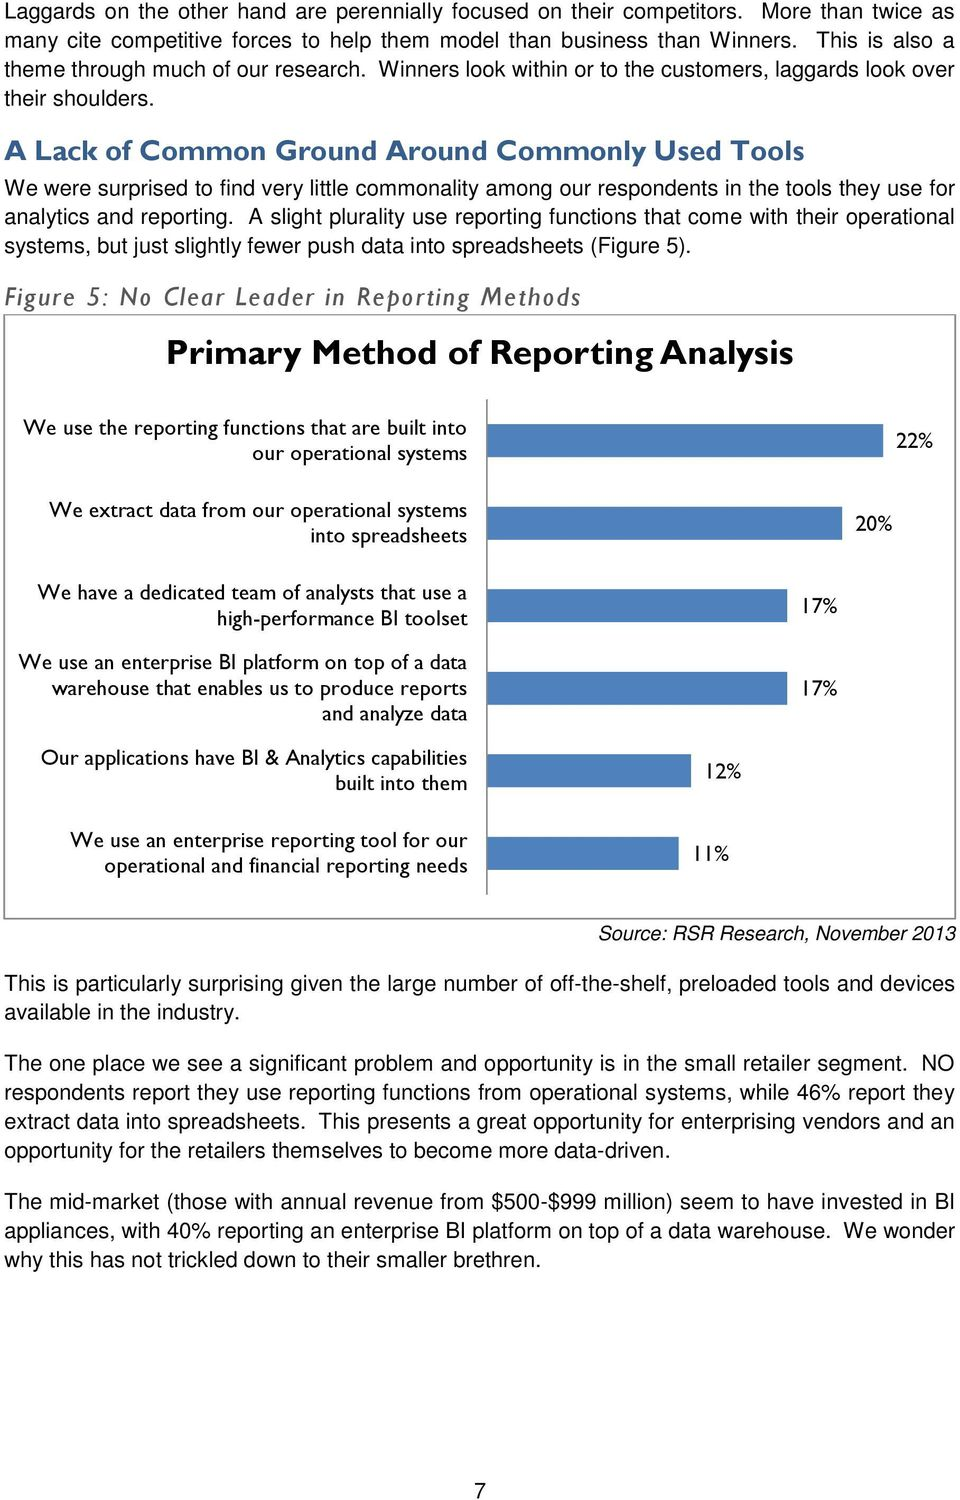 A Lack of Common Ground Around Commonly Used Tools We were surprised to find very little commonality among our respondents in the tools they use for analytics and reporting.